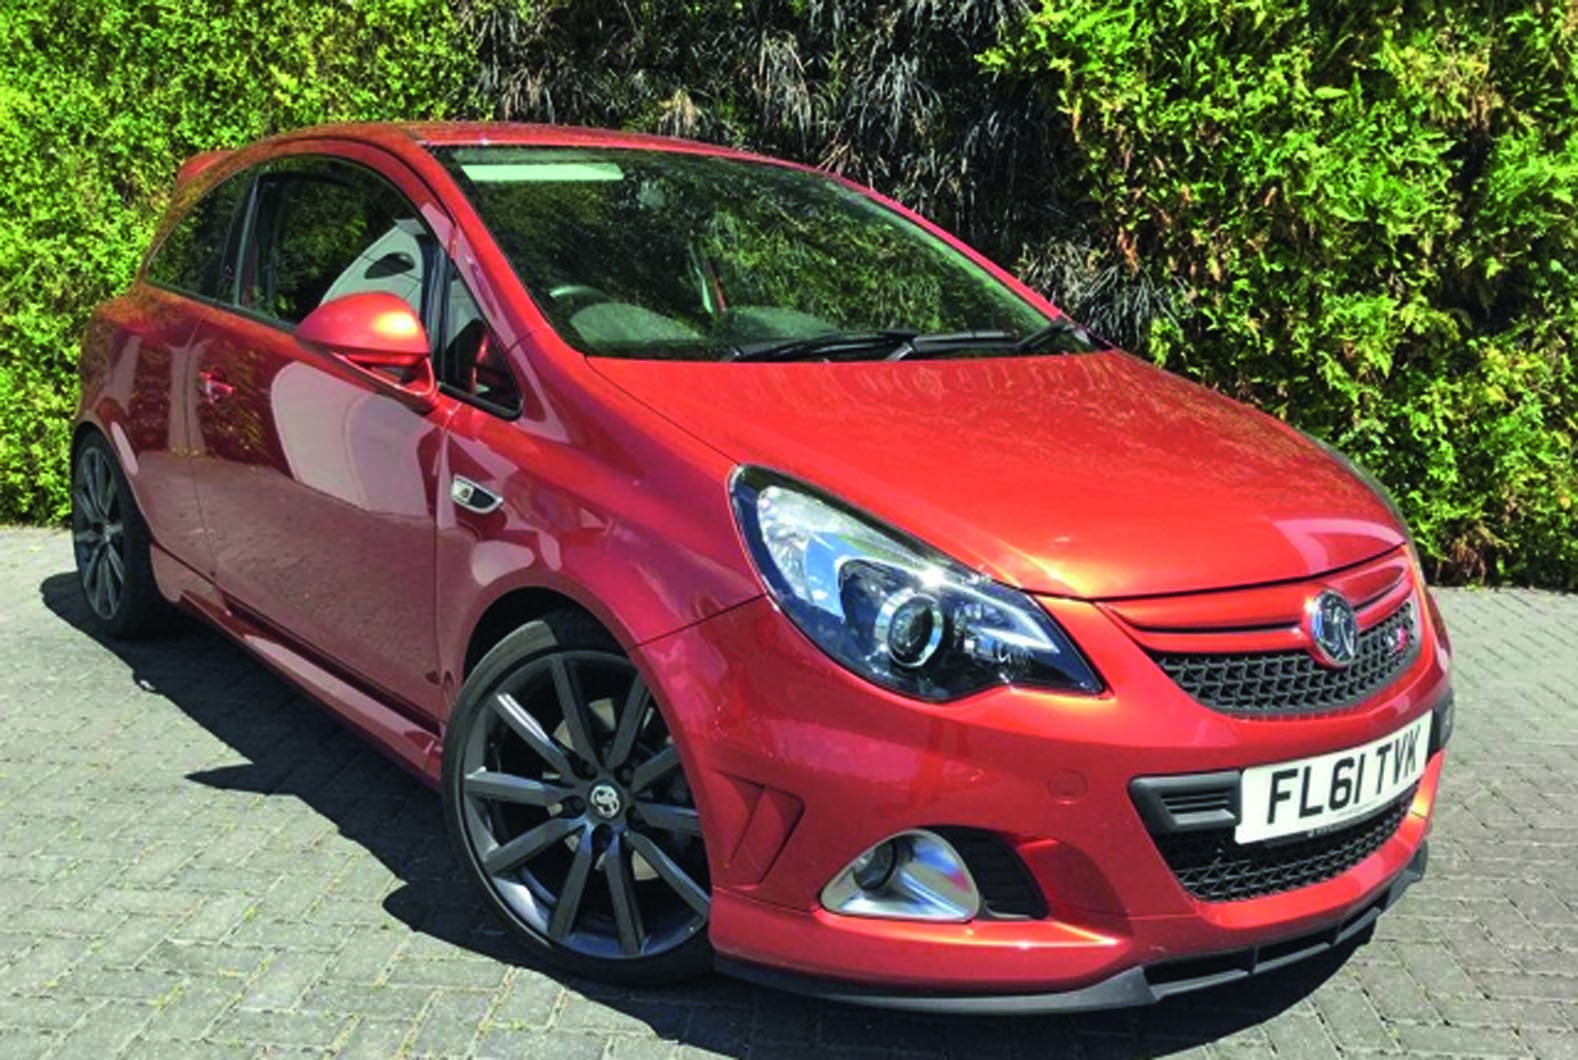 John Evans. Read more. Vauxhall Corsa VXR review